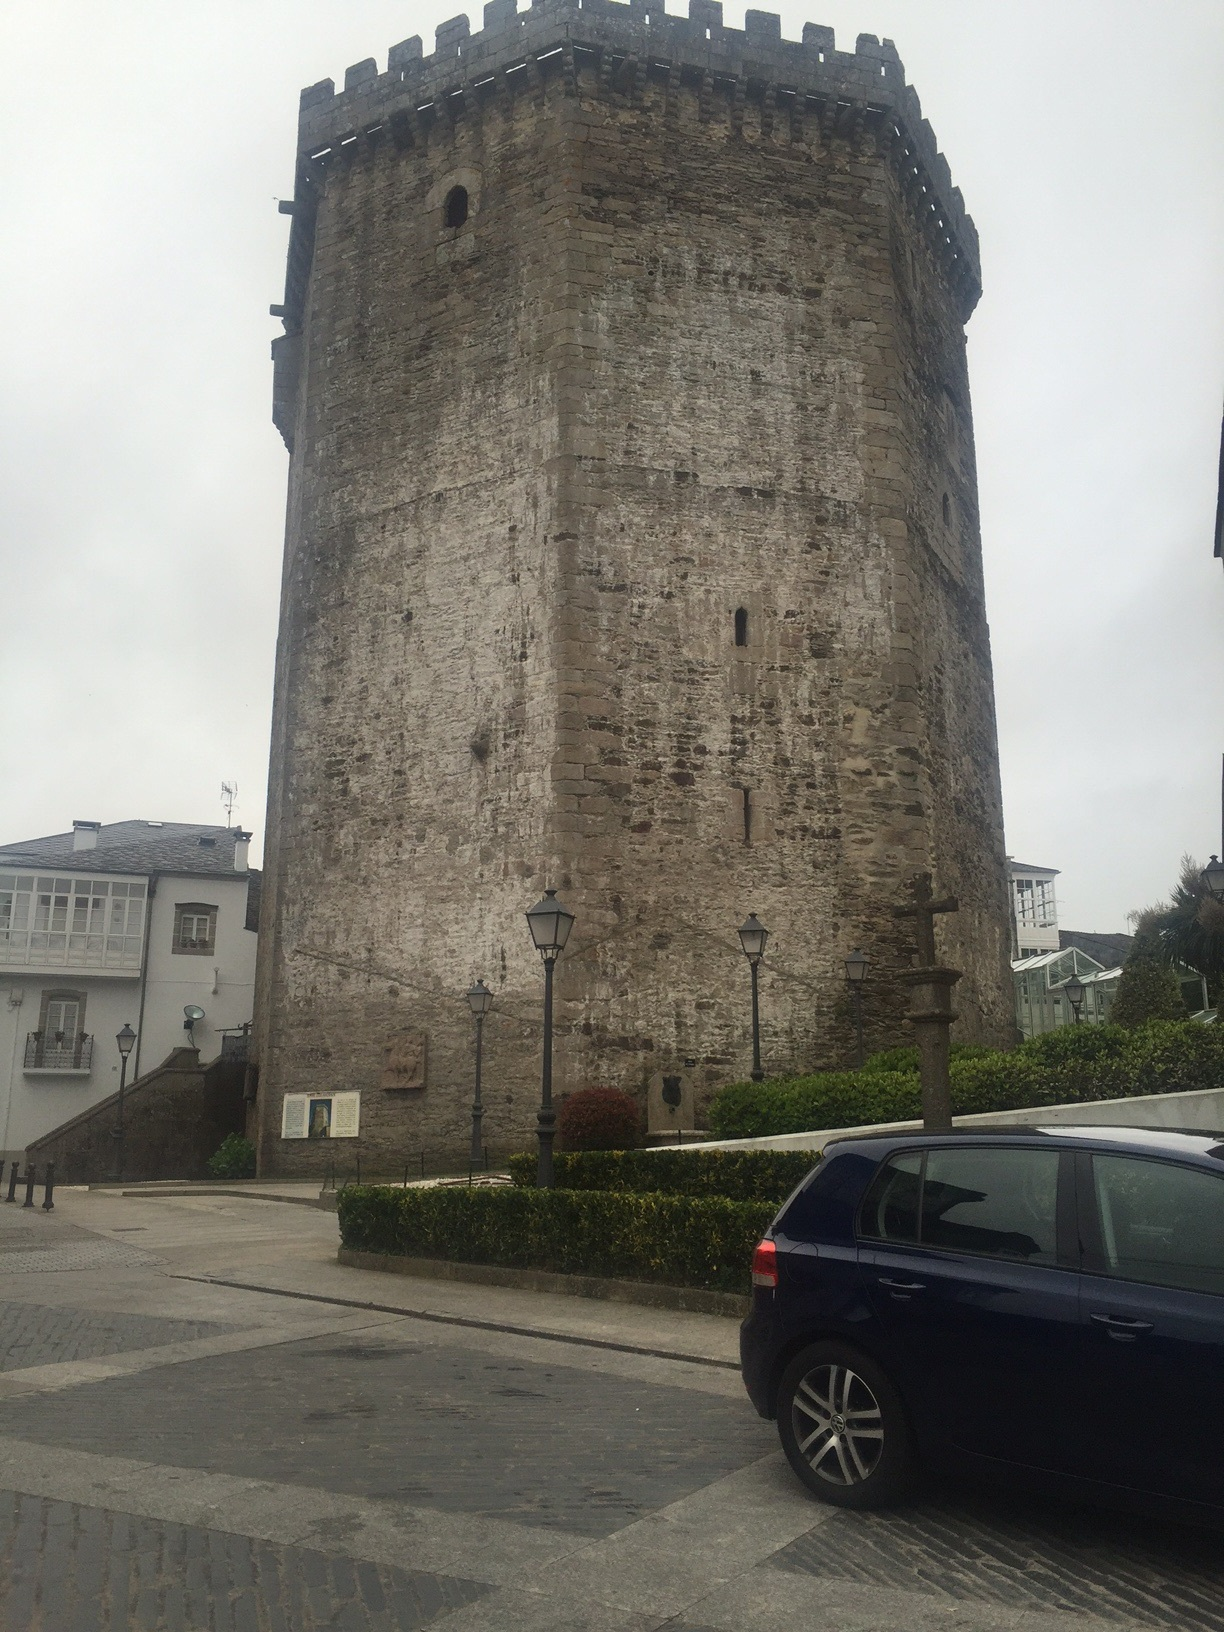 Medieval tower, now a hotel